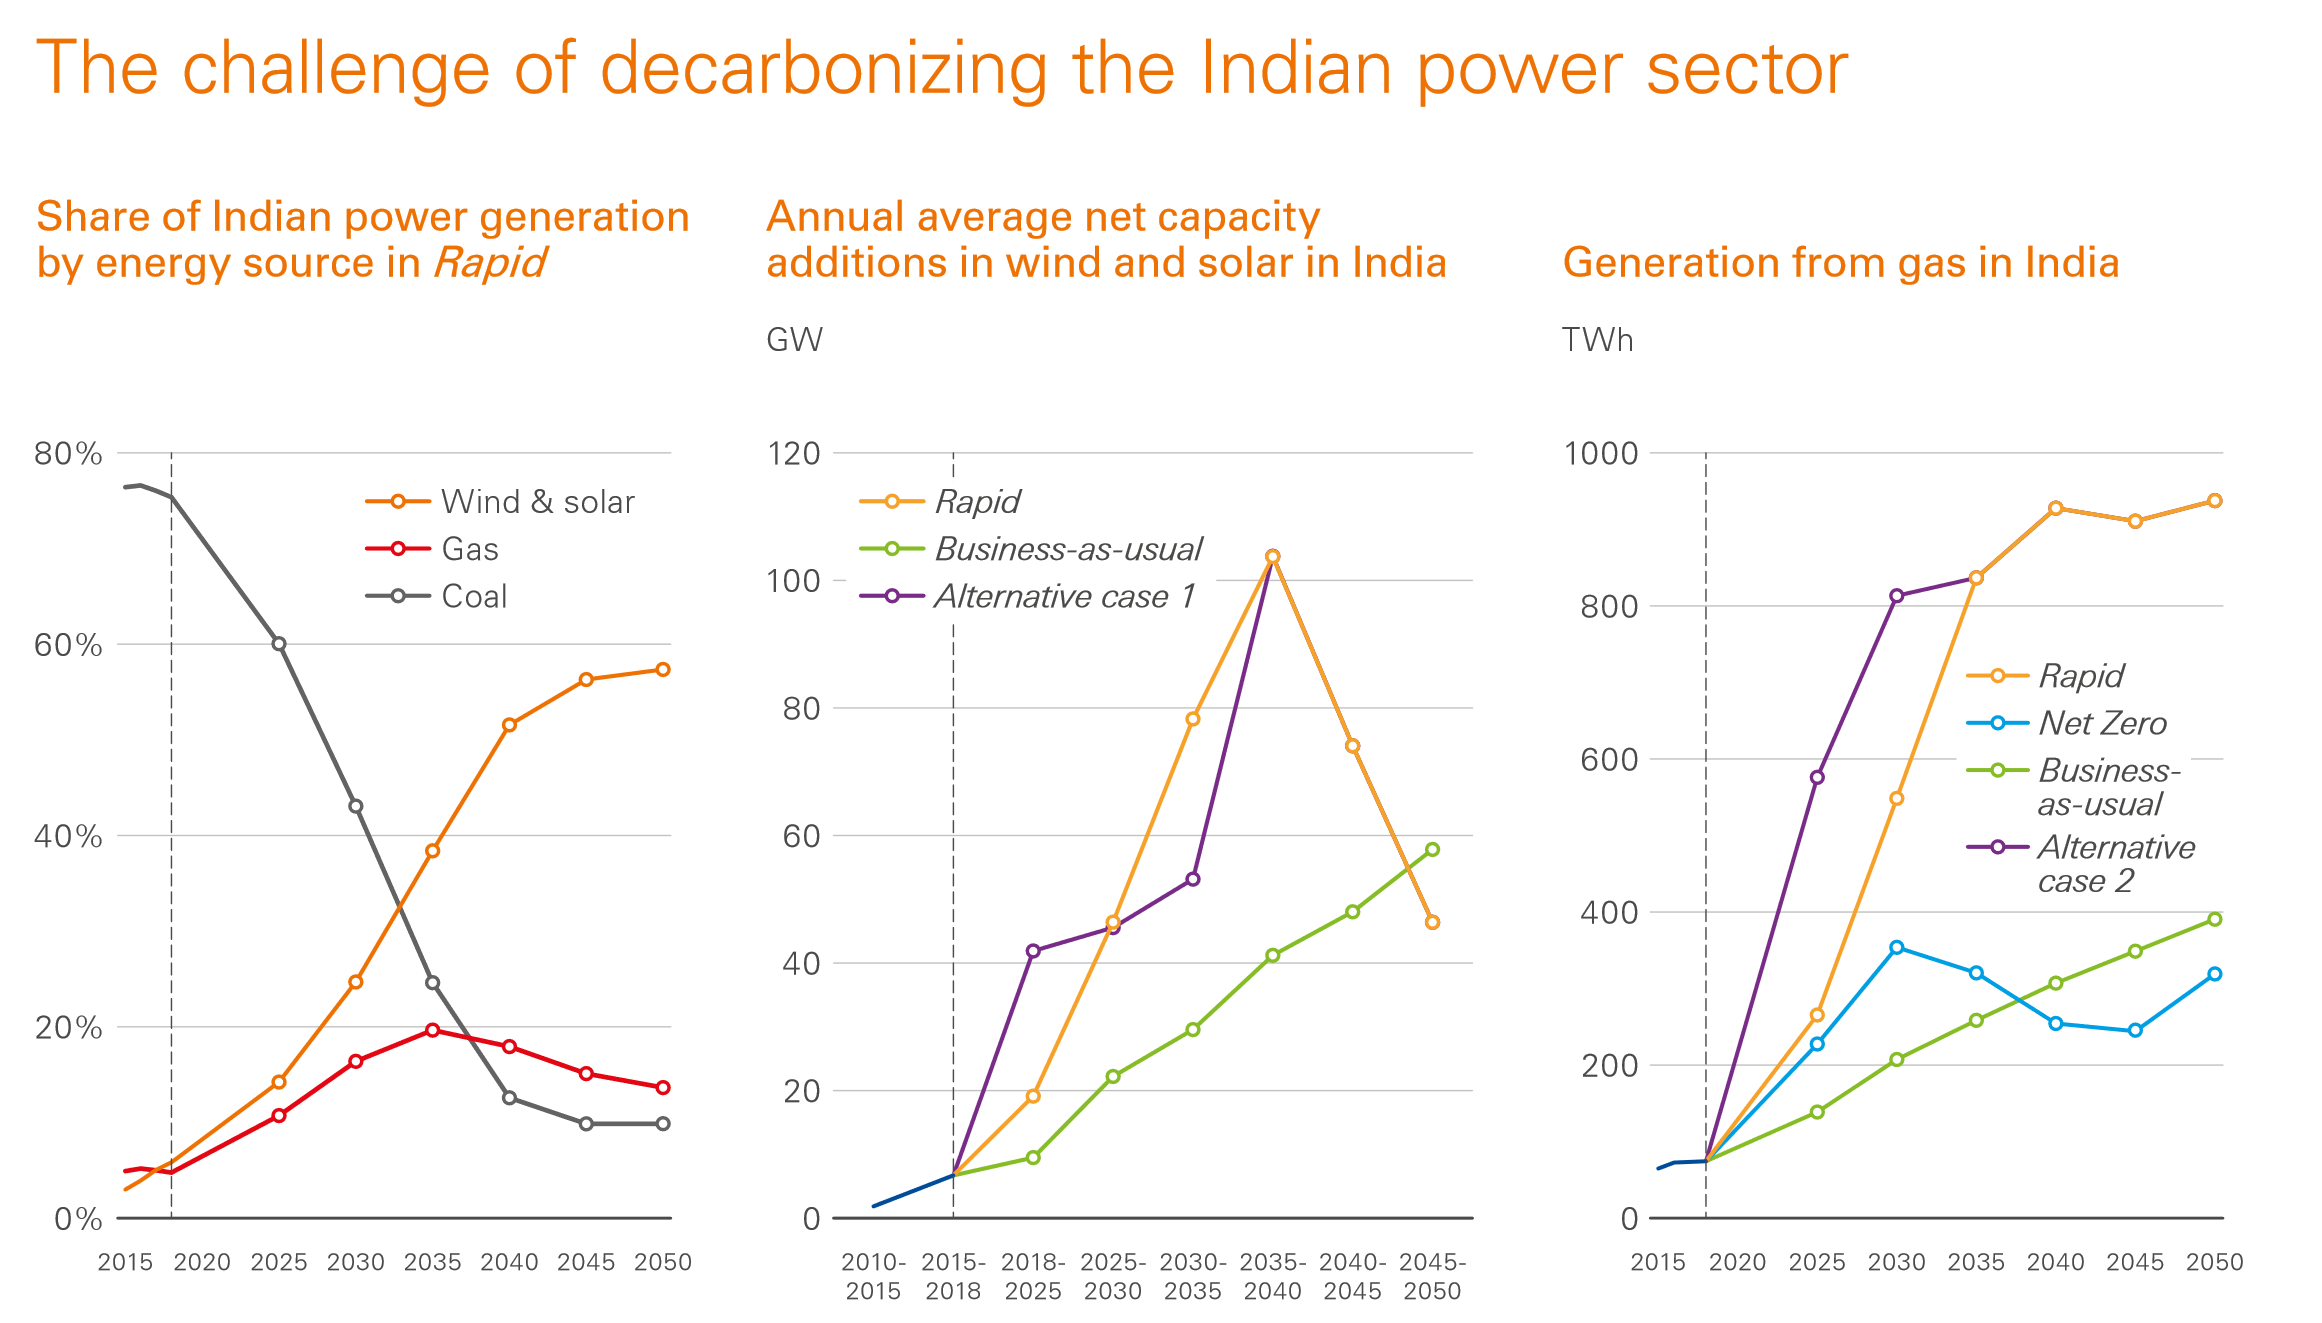 The challenge of decarbonizing the Indian power sector